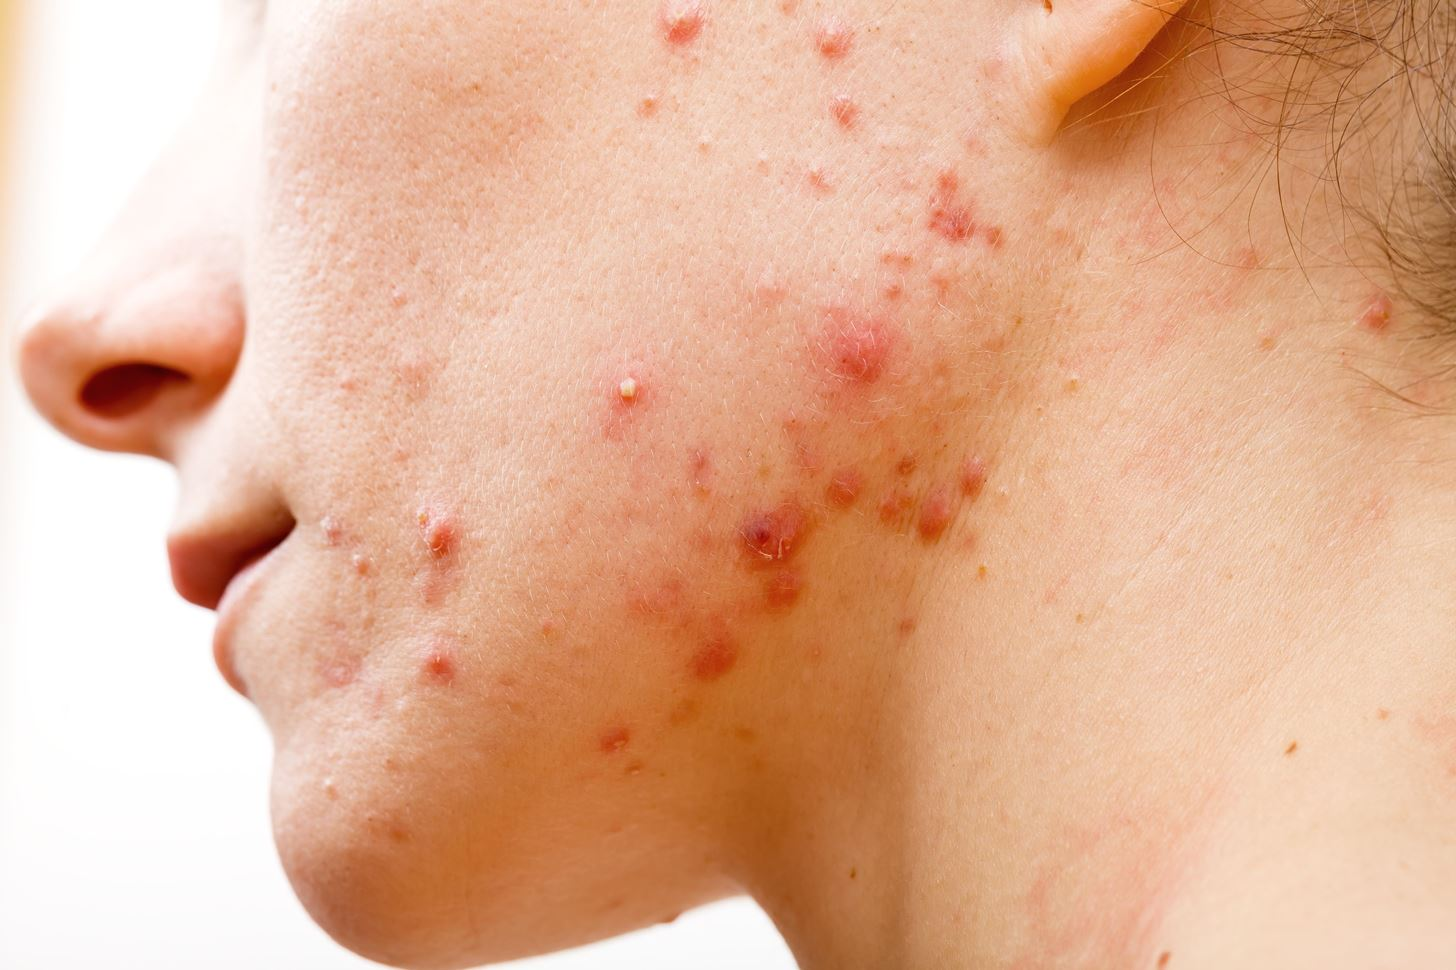 Frustrated by Acne? New Research Shows Skin Microbiome Makes a Difference